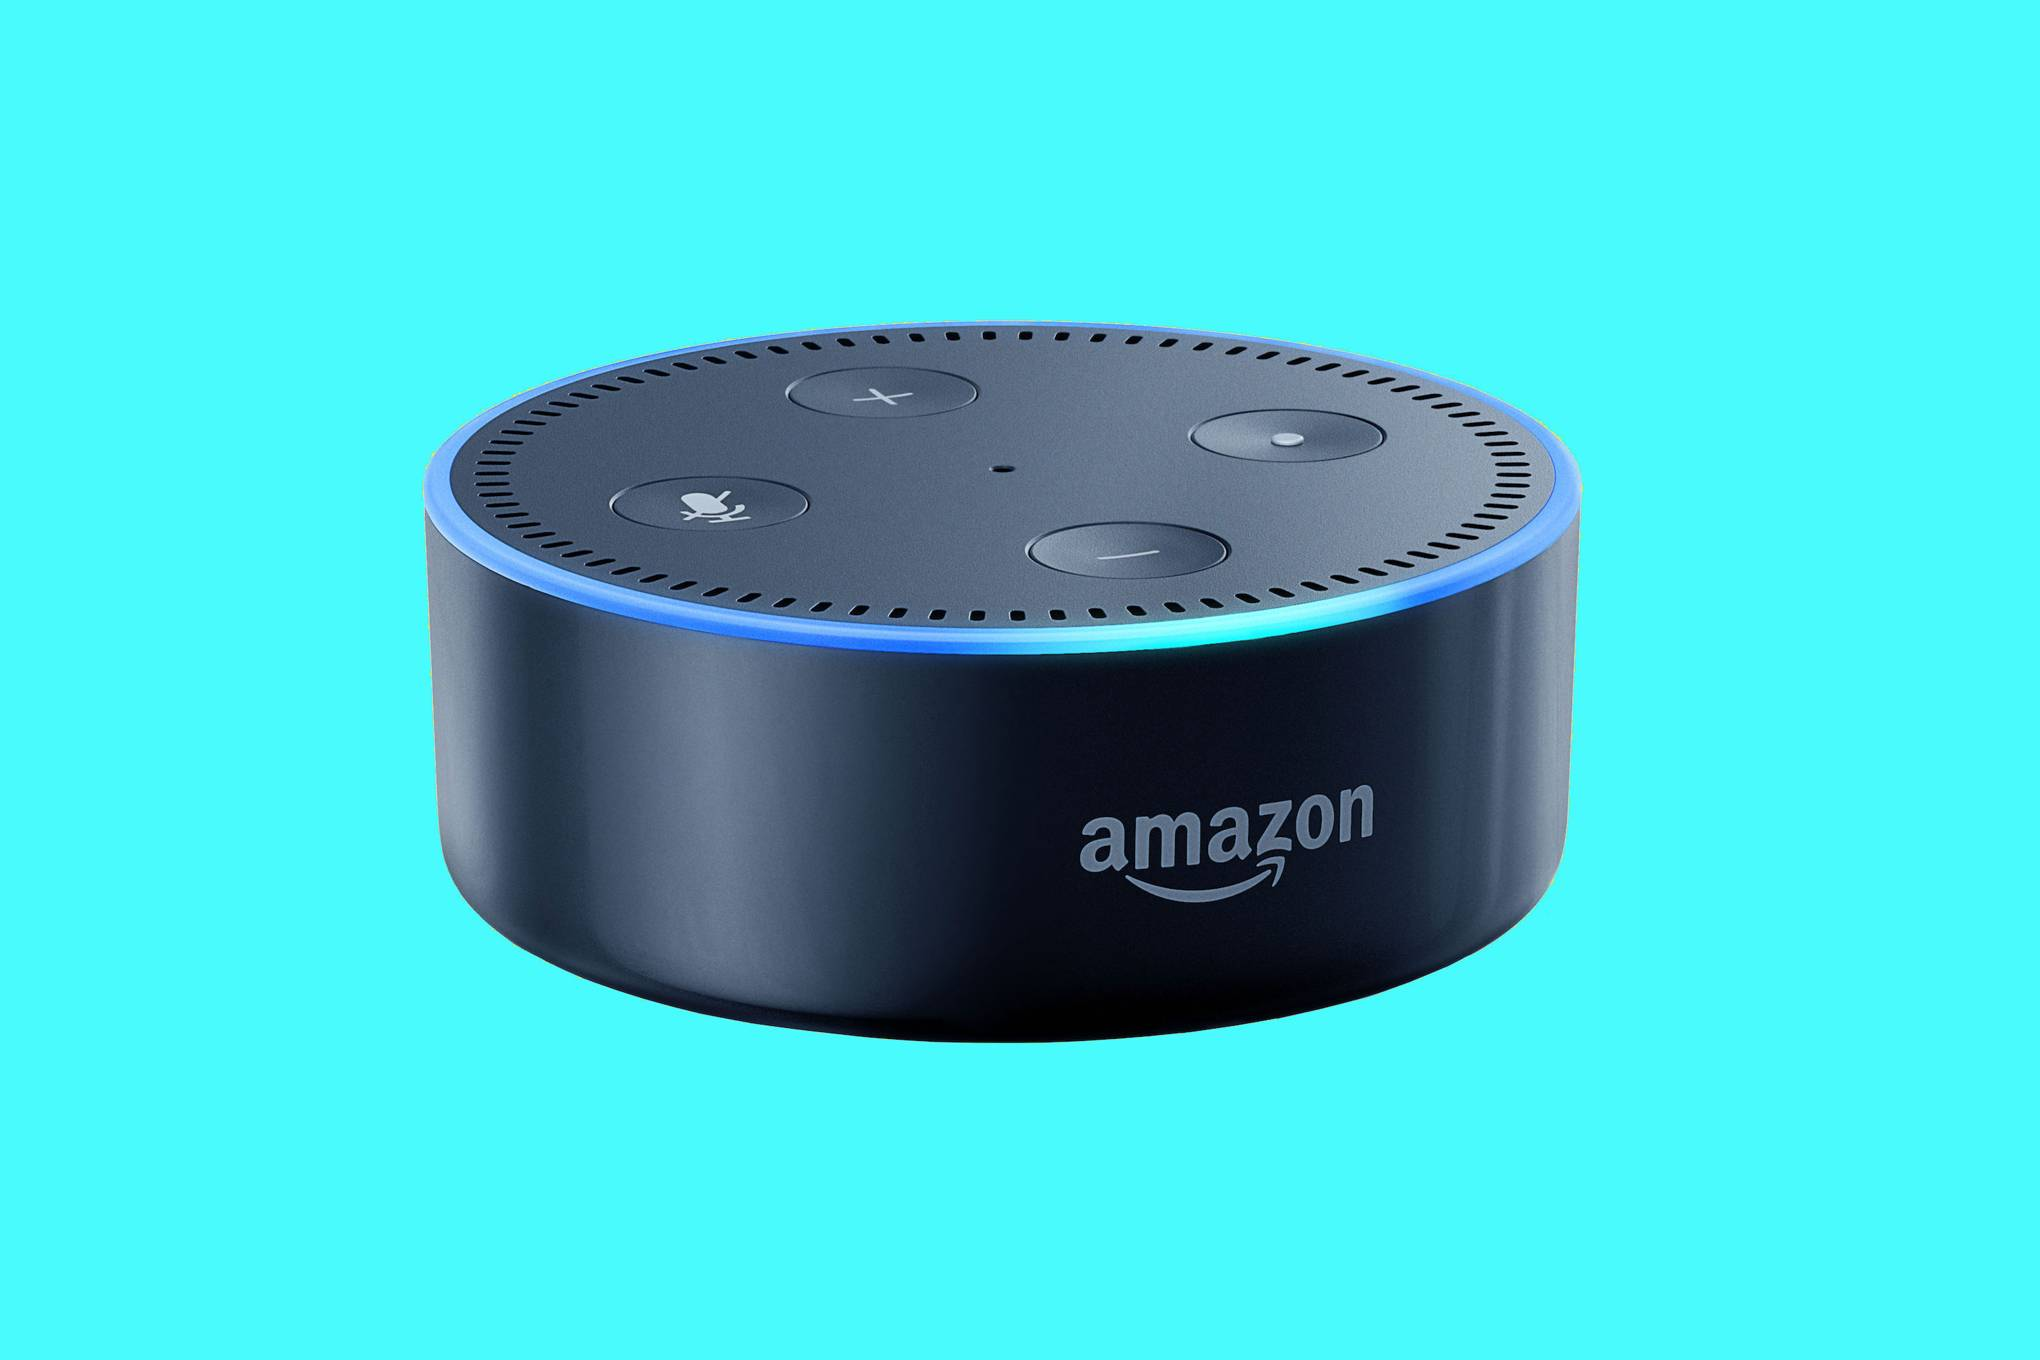 147d637a7b3 Amazon Echo Skills and how to use them